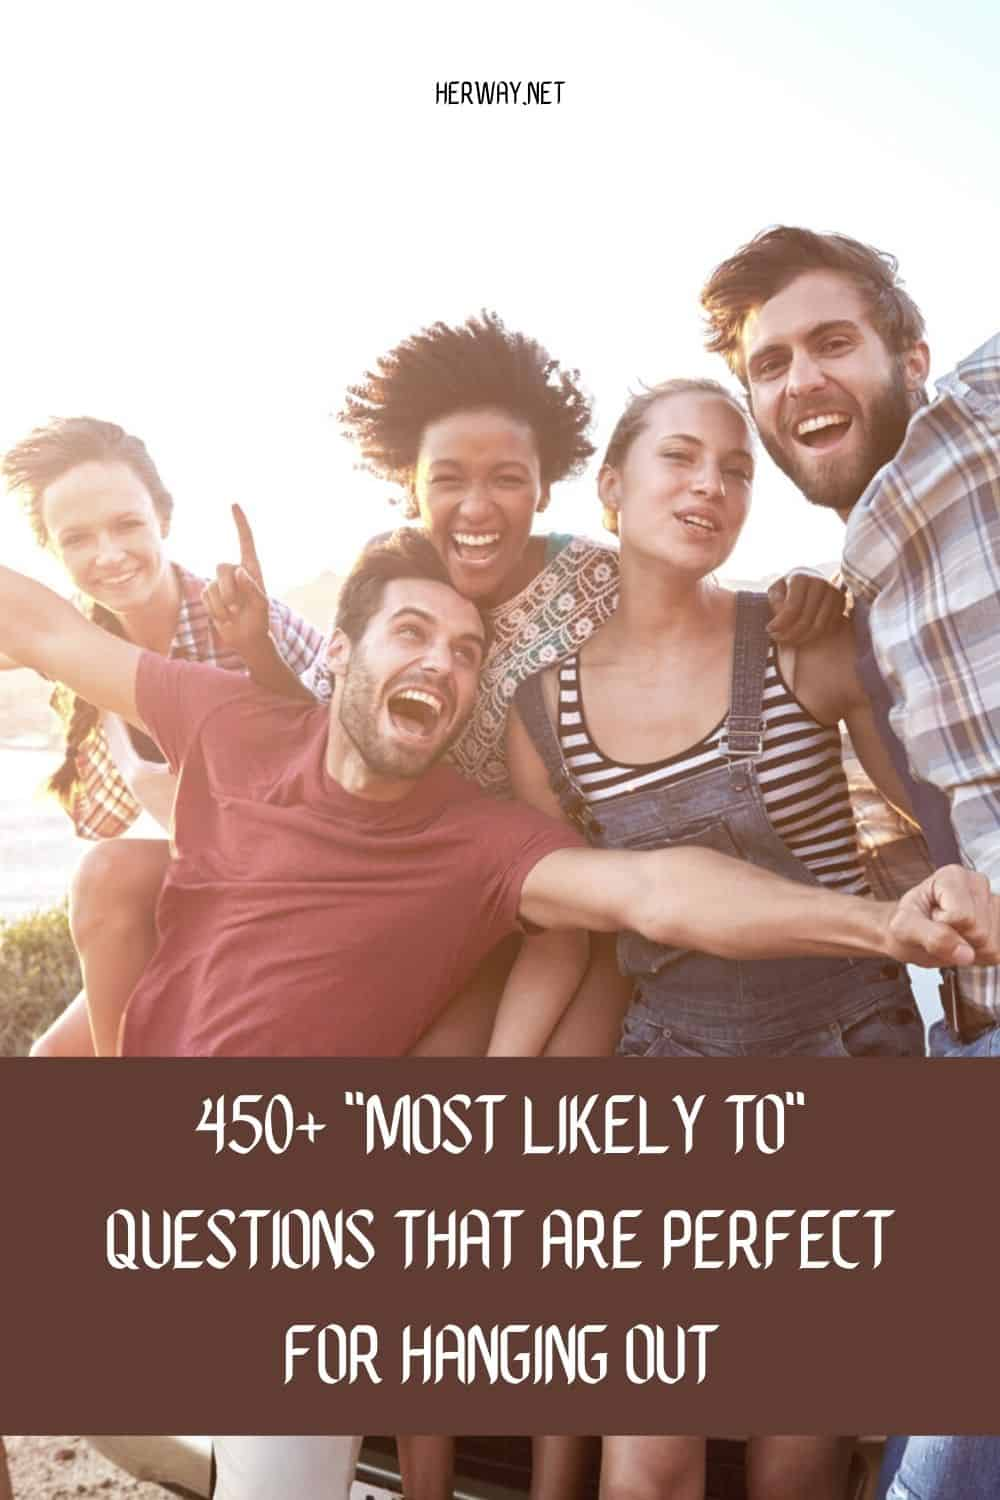 450+ Most Likely To Questions That Are Perfect For Hanging Out